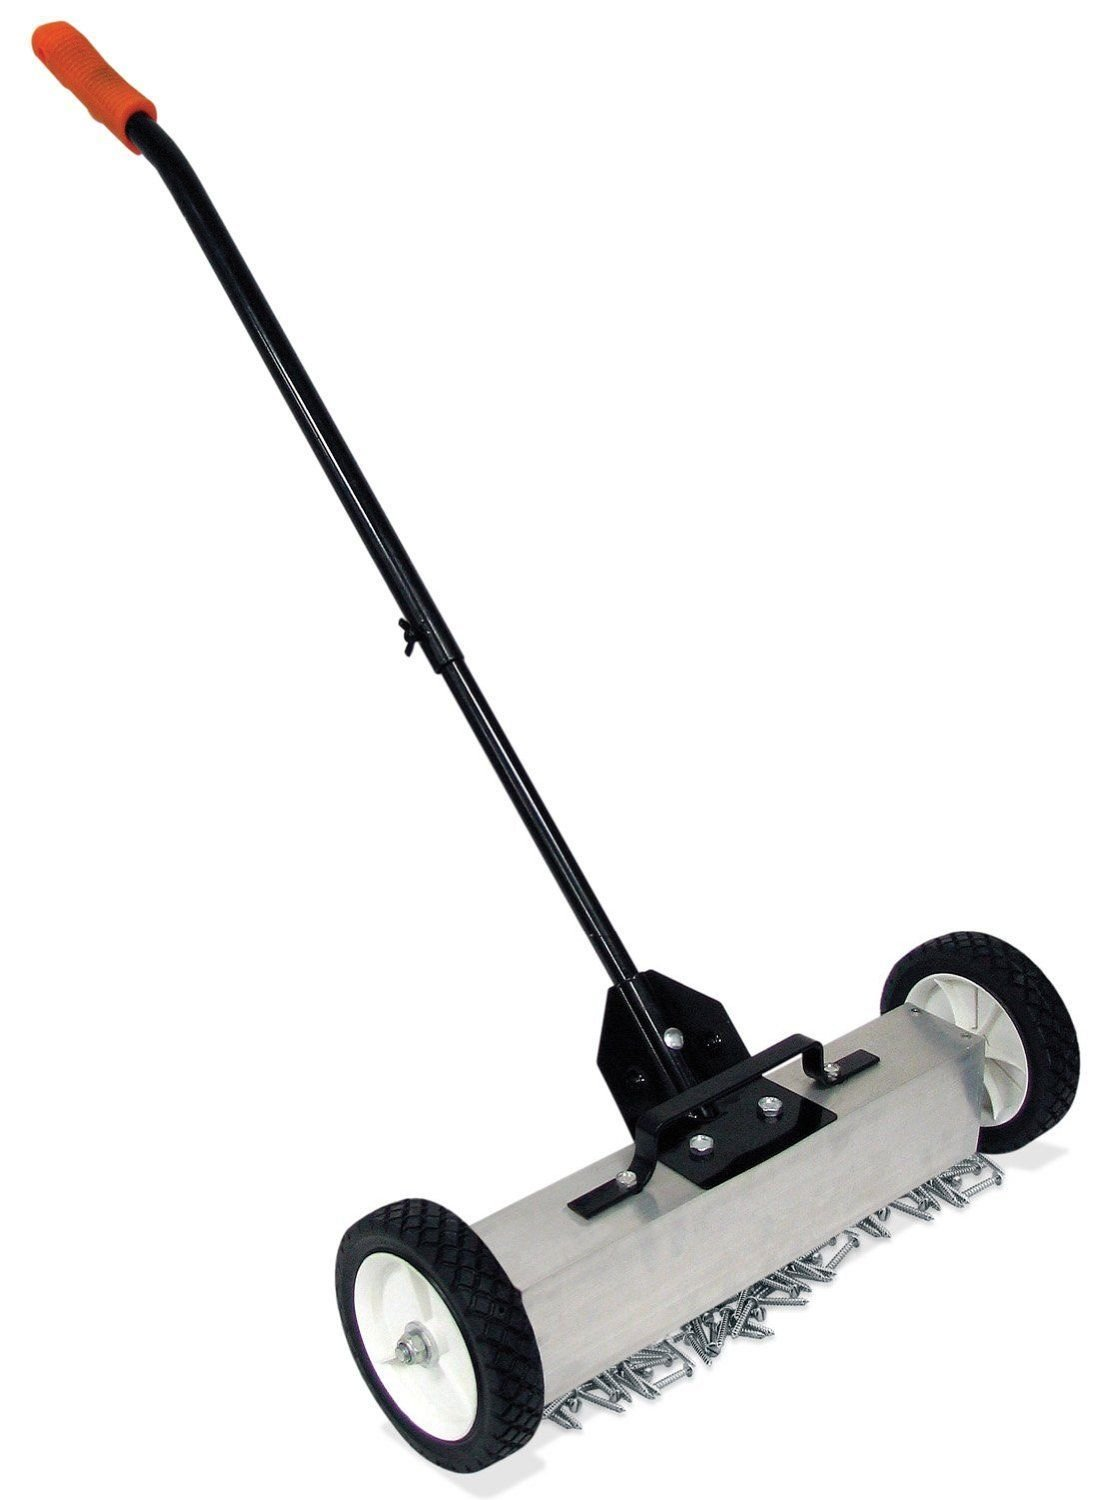 Generic YH-US3-160519-36 8yh3119yh FLOOR SWEEPER ADJUSTABLE SWEEPER NEW PUSH NEW PUSH WITH RELEASE LE WITH R TYPE 18'' E 18'' ADJ FLOOR SWEEPER